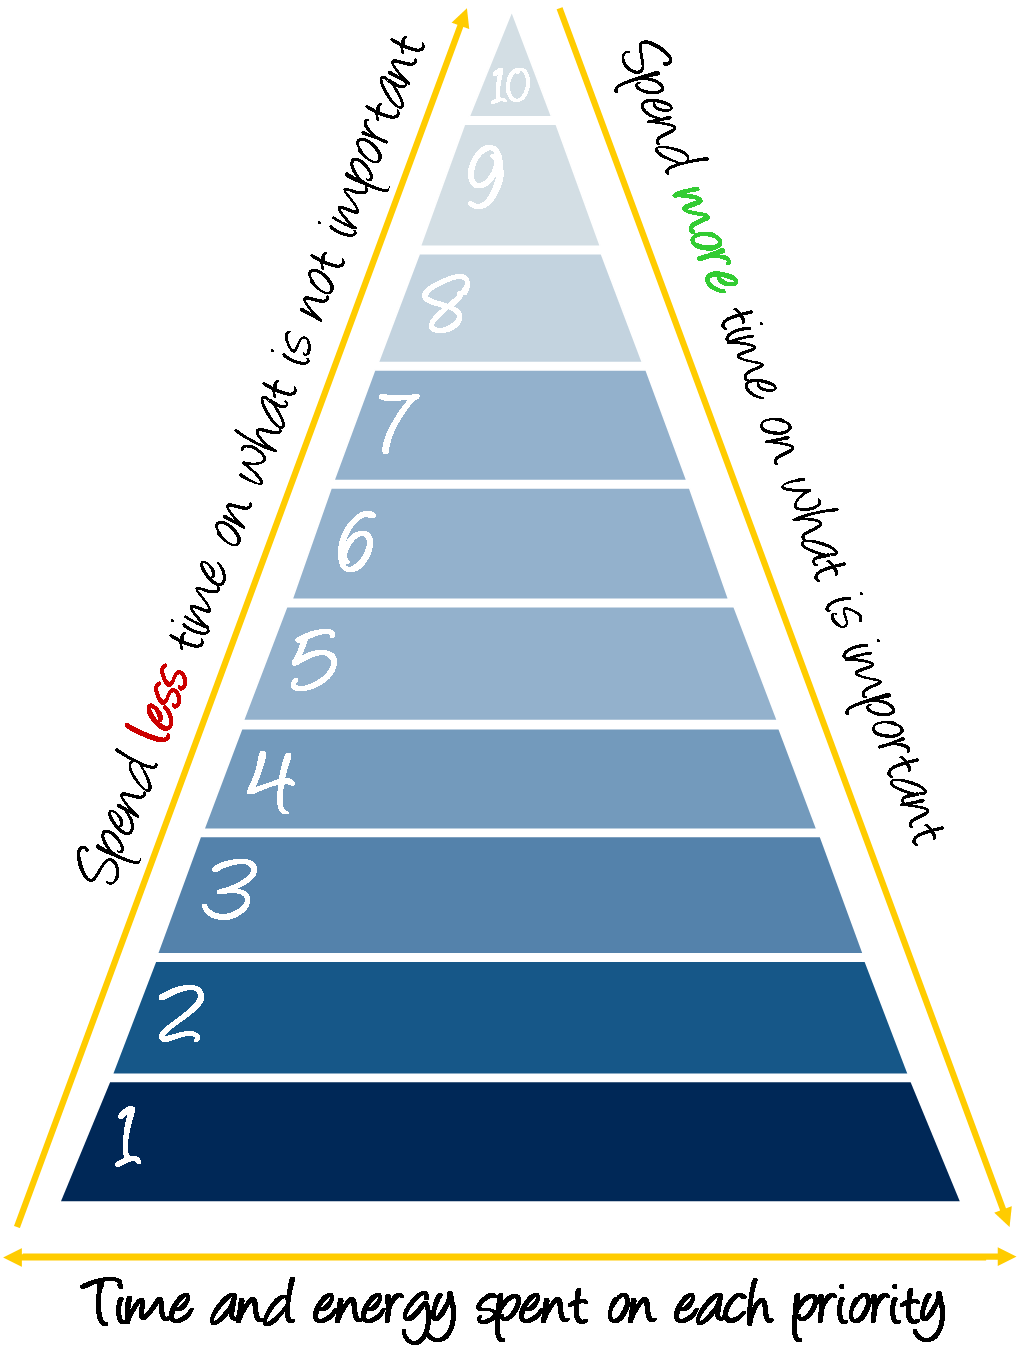 Transparent pyramid layer. The priority is made